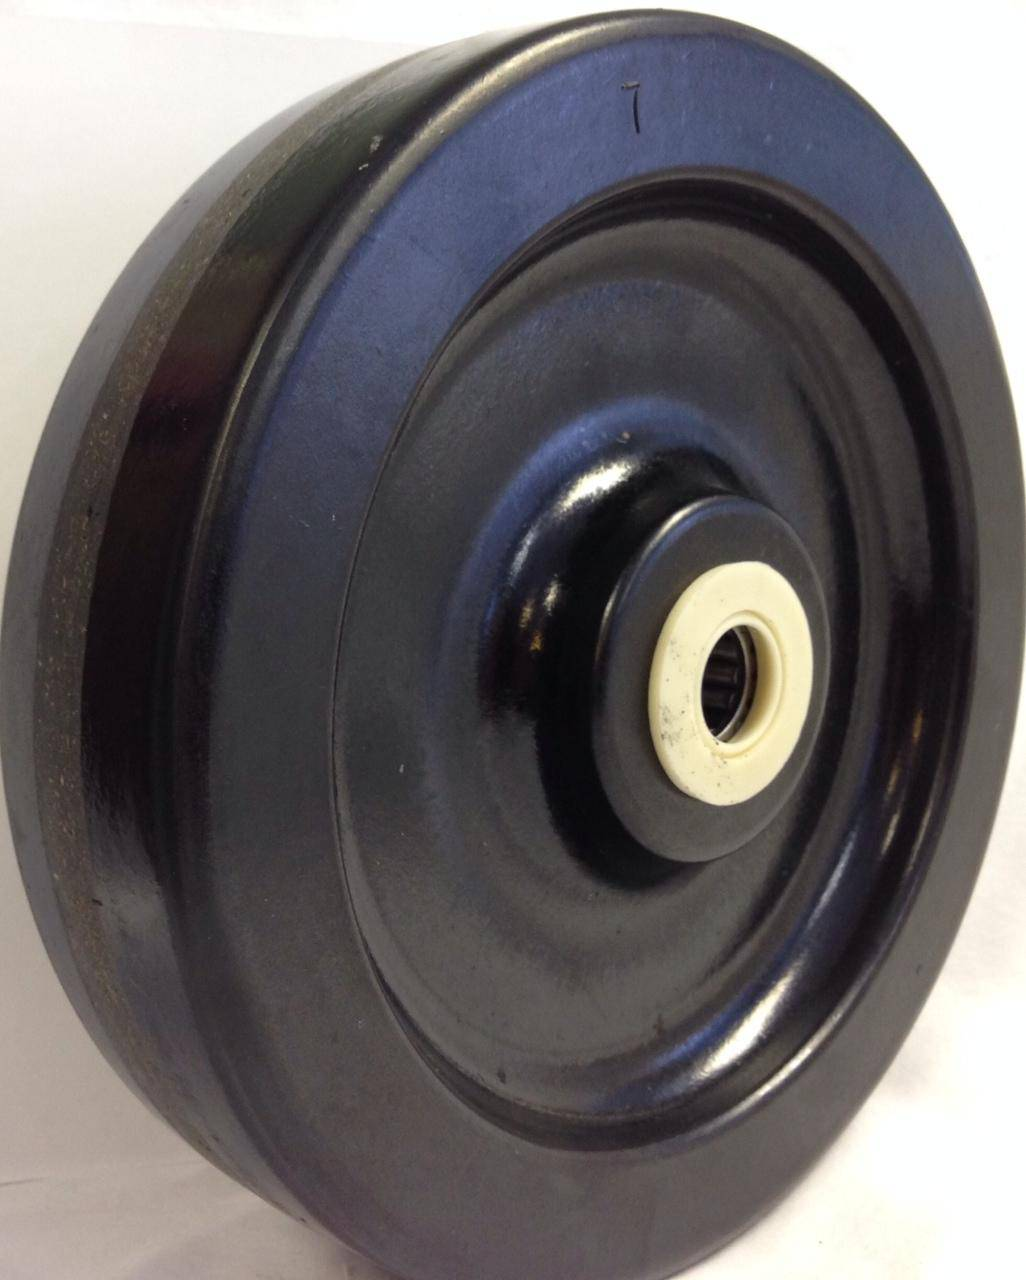 8″ Phenolic Wheel With 2-3/4″ Hub 1″ Roller Bearing 2000 Lbs Capacity